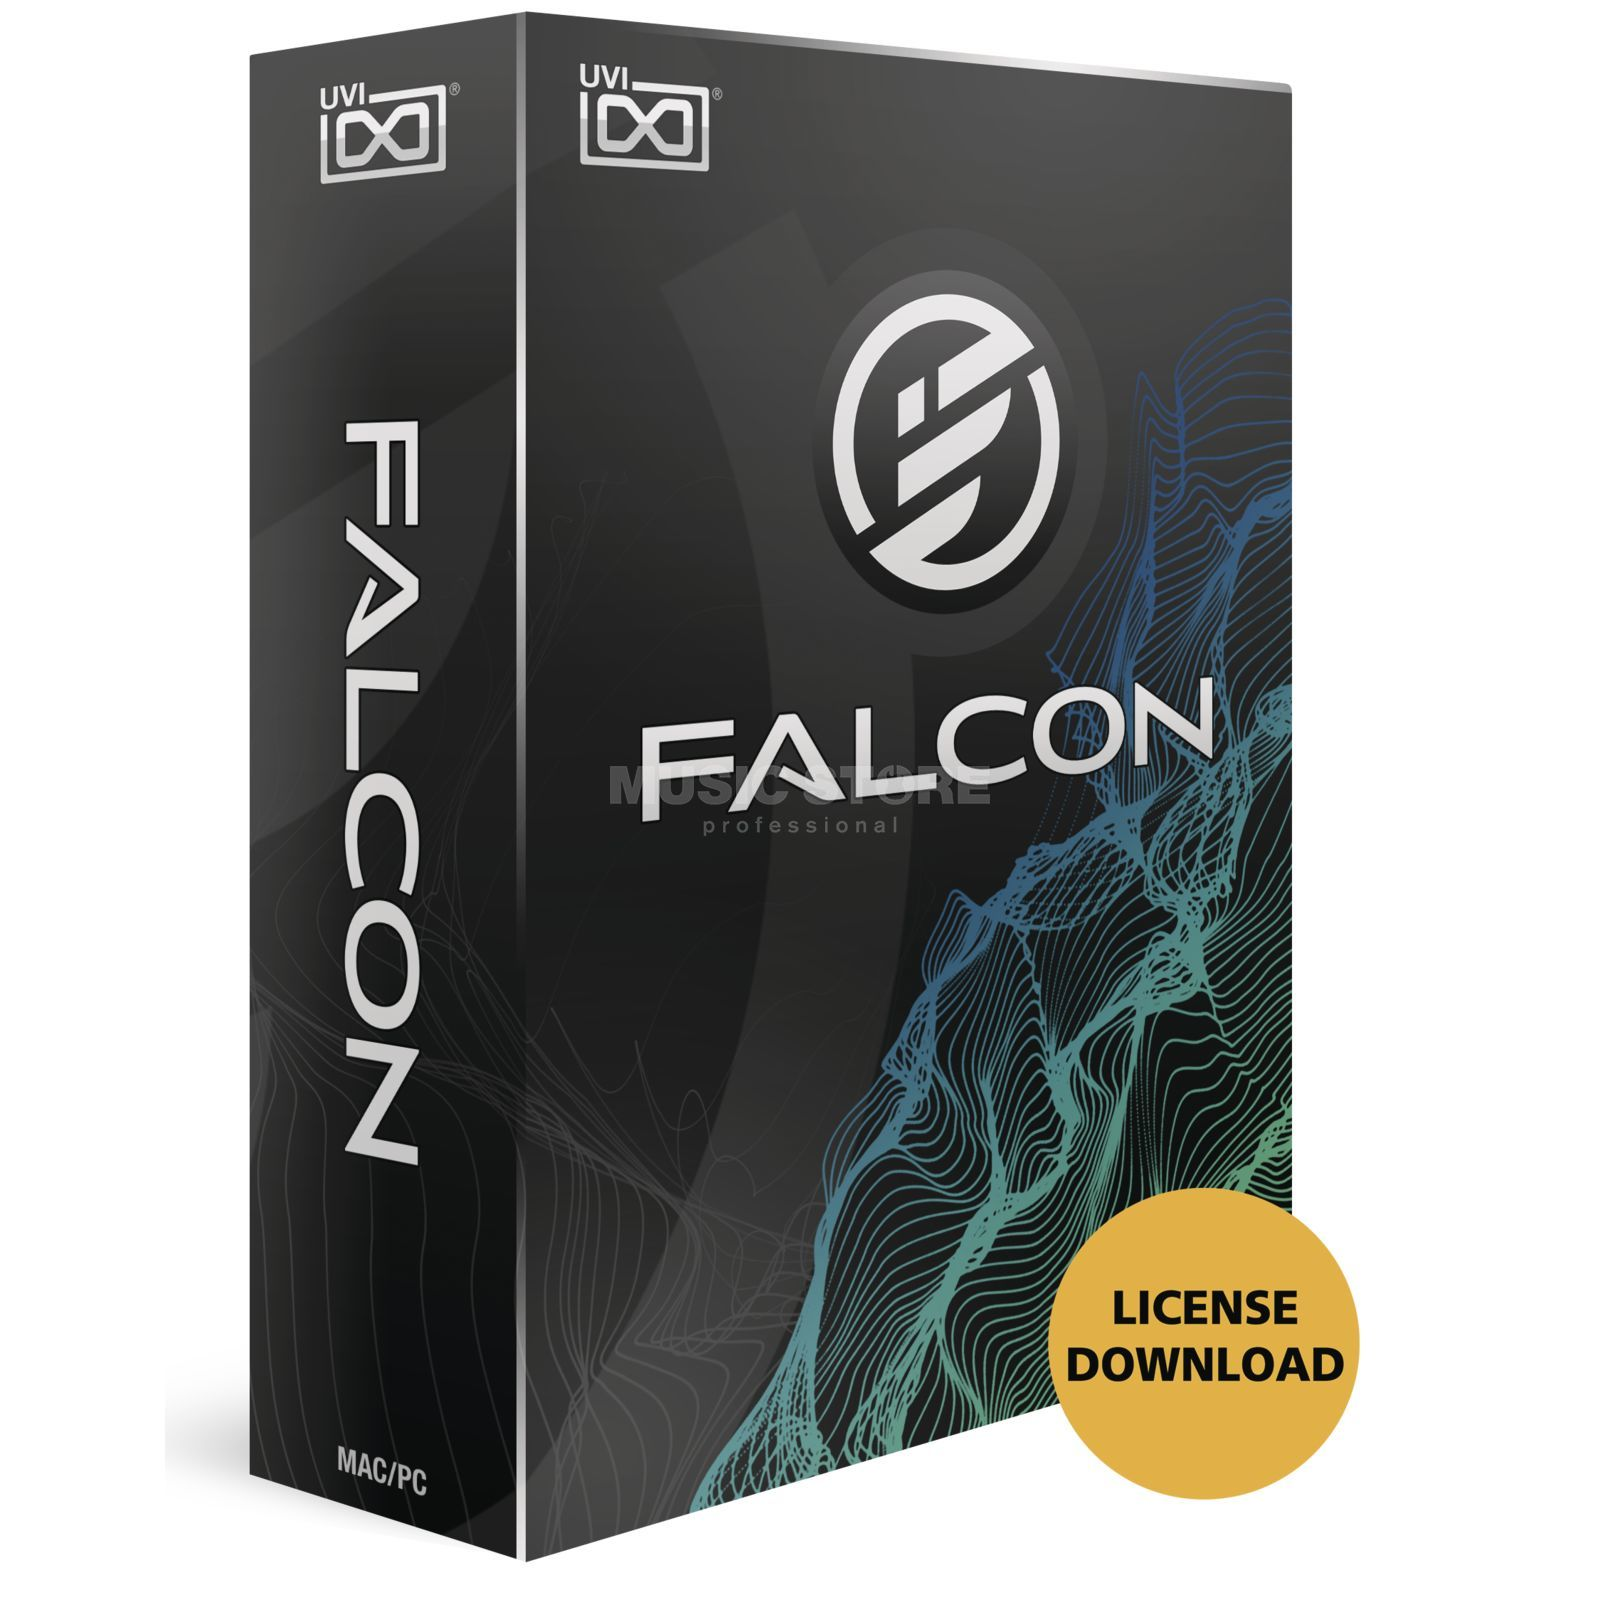 UVI Sounds & Software Falcon (Lizenz) Software Instrument Produktbild